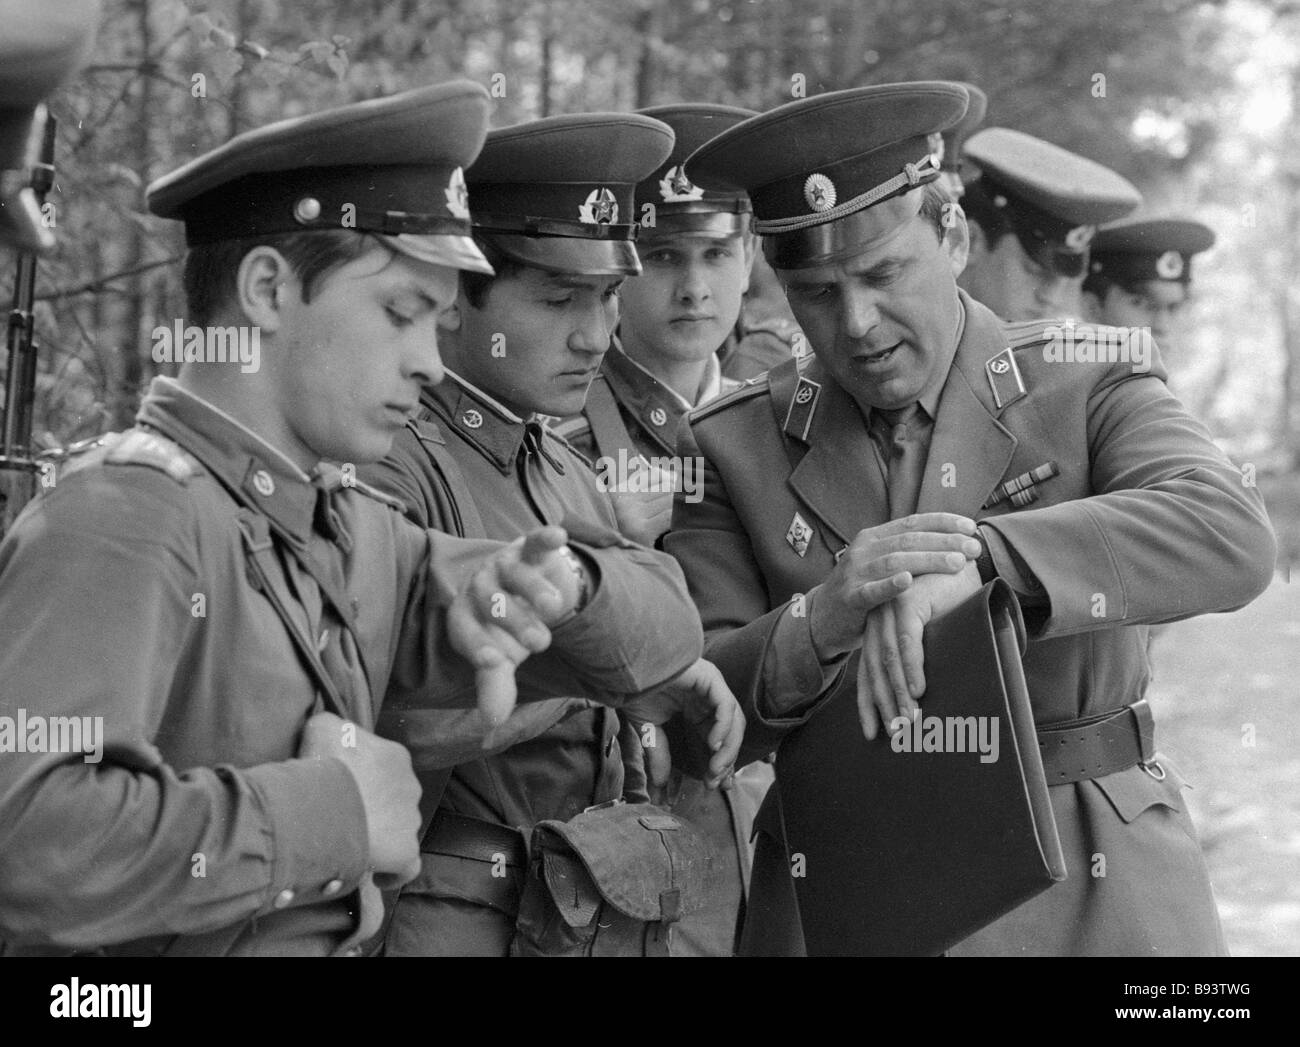 Cadets of the Moscow Mossovet Border Guards Command Higher School of the USSR KGB synchronizing watches before fulfilling - Stock Image